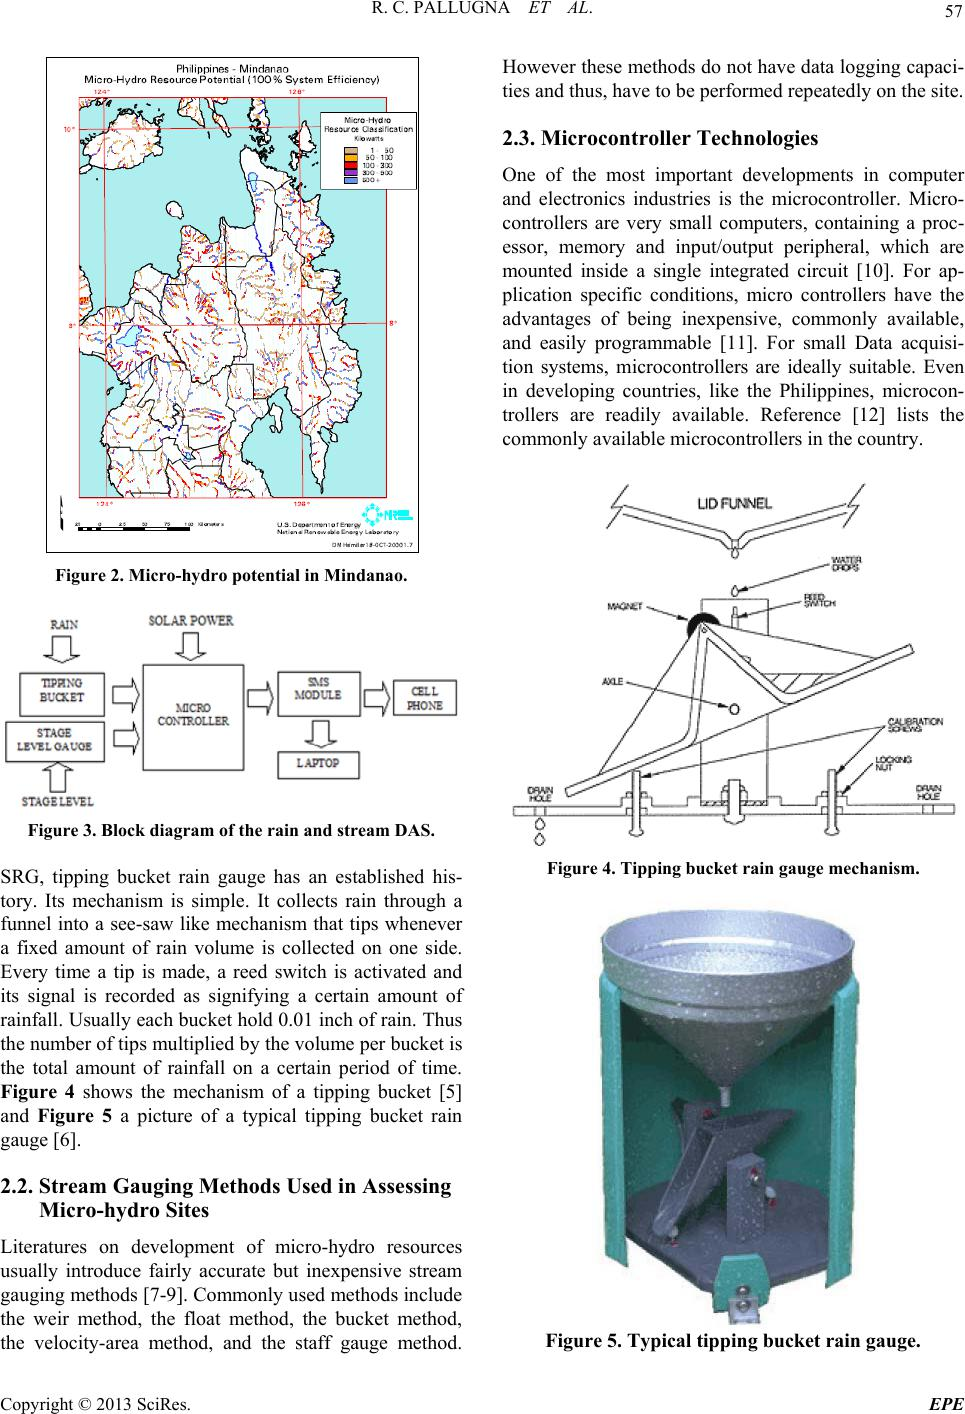 Low Cost Remote Rain And Stream Data Acquisition System